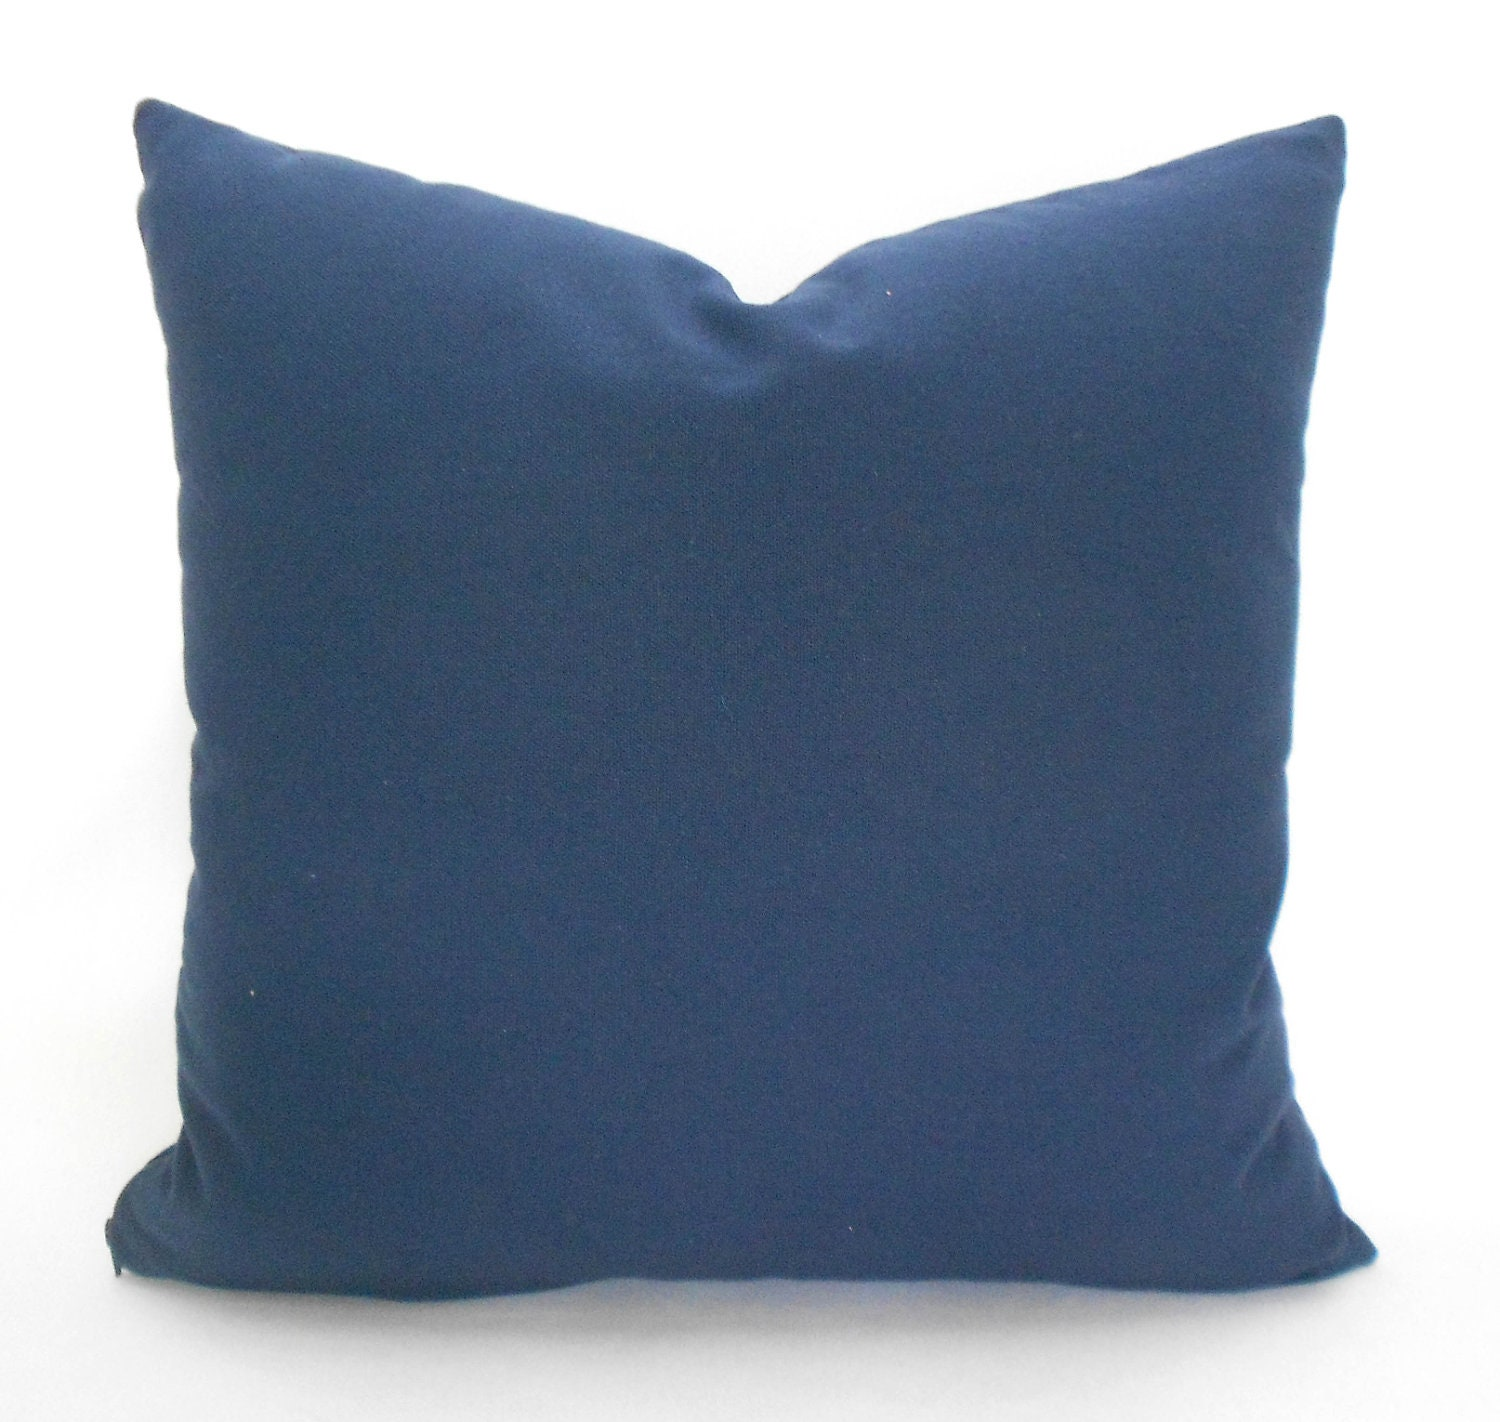 Throw Pillow Cover Measurements : Navy Blue Pillow Covers ANY SIZE Decorative Pillow Cover Navy